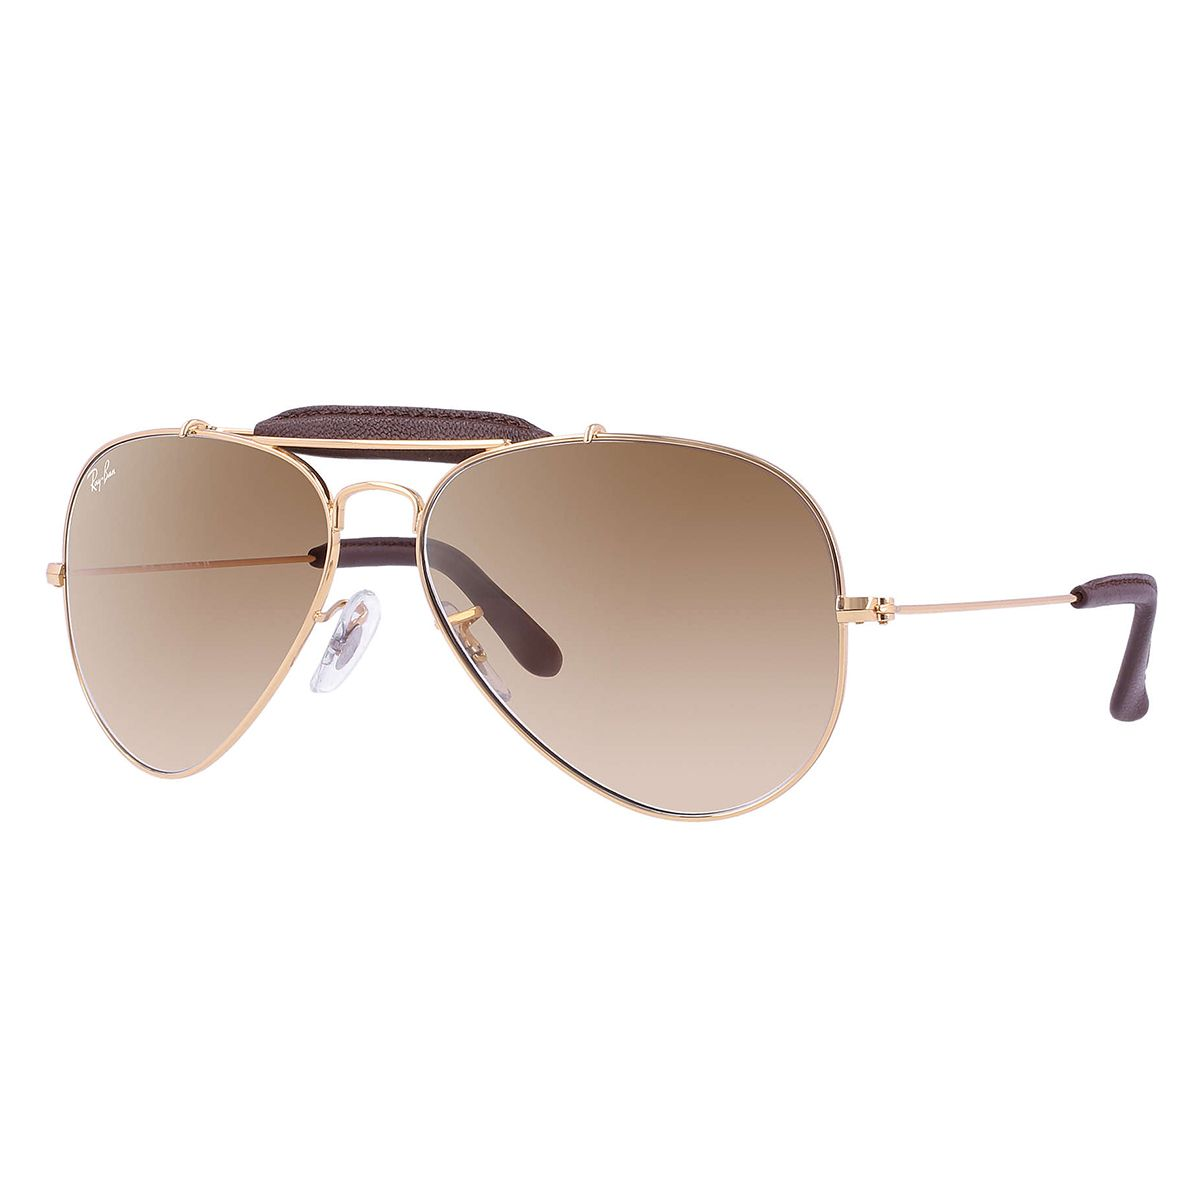 1e1bfd34b óculos Ray Ban Rb3025 Cor 001 51 – Southern California Weather Force